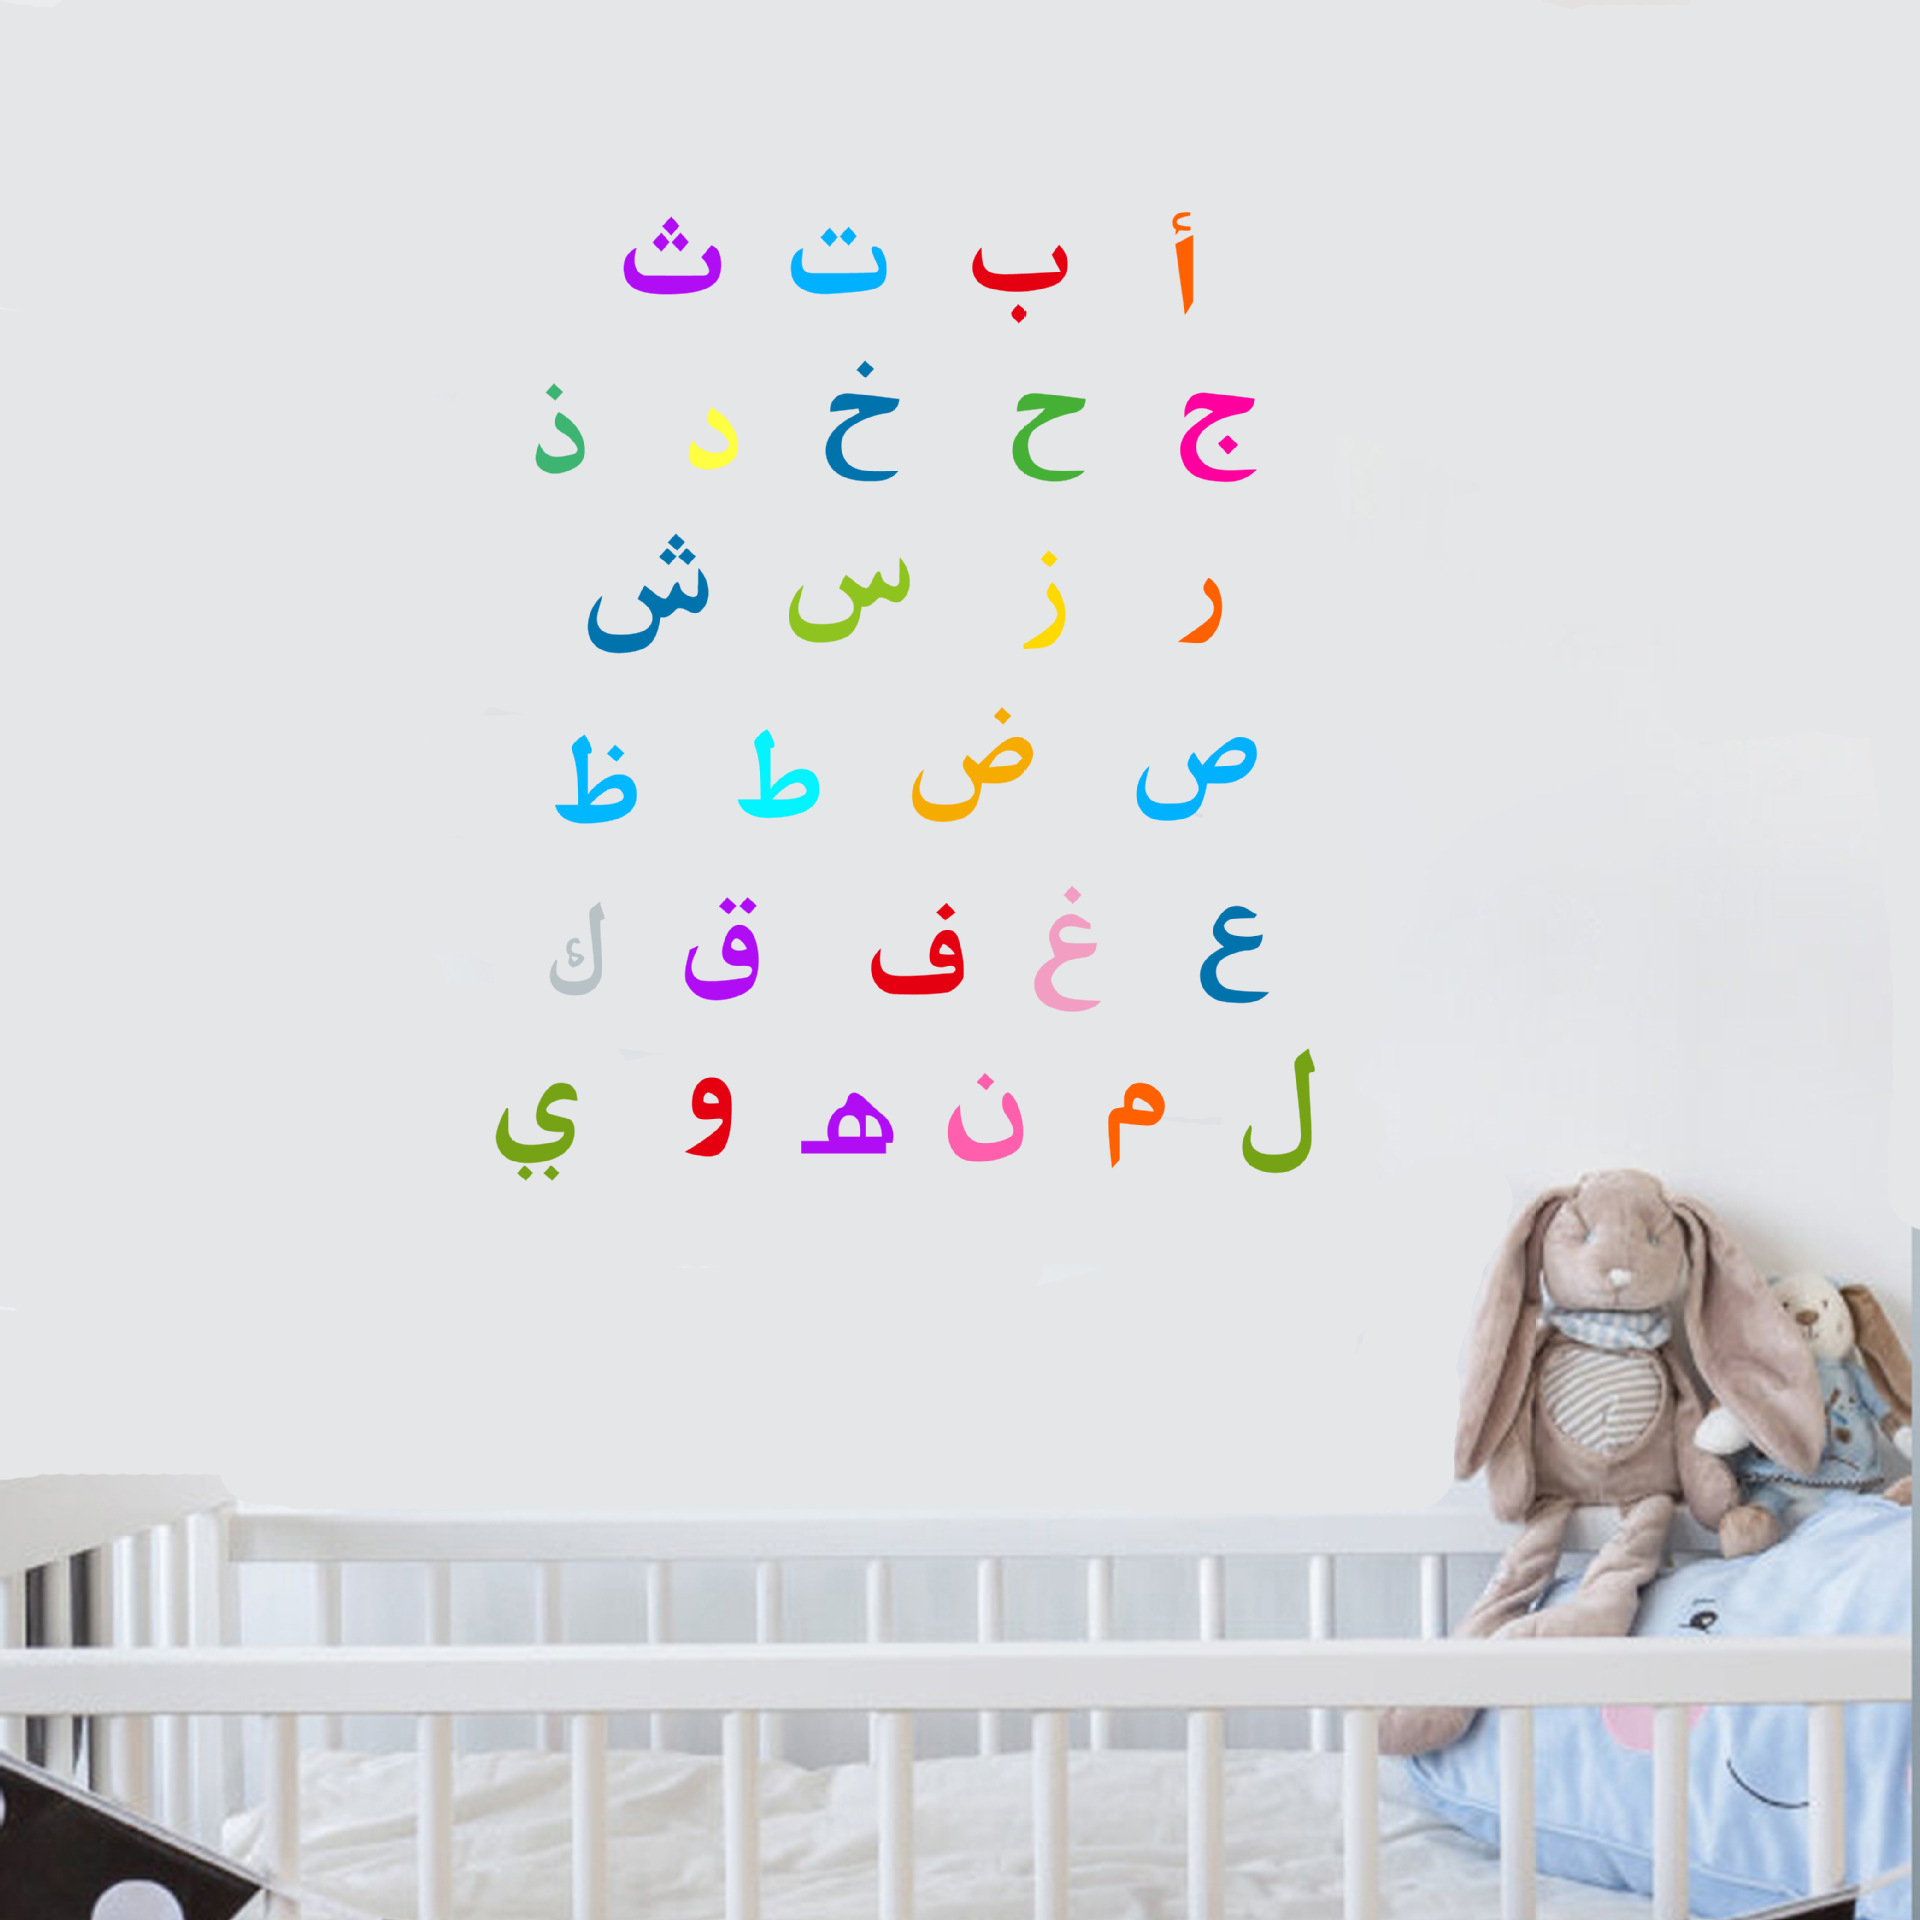 online buy wholesale wallpaper fun from china wallpaper fun arabia color letter early children fun decorative cartoon wall stickers home diy decor funny stickers wallpaper